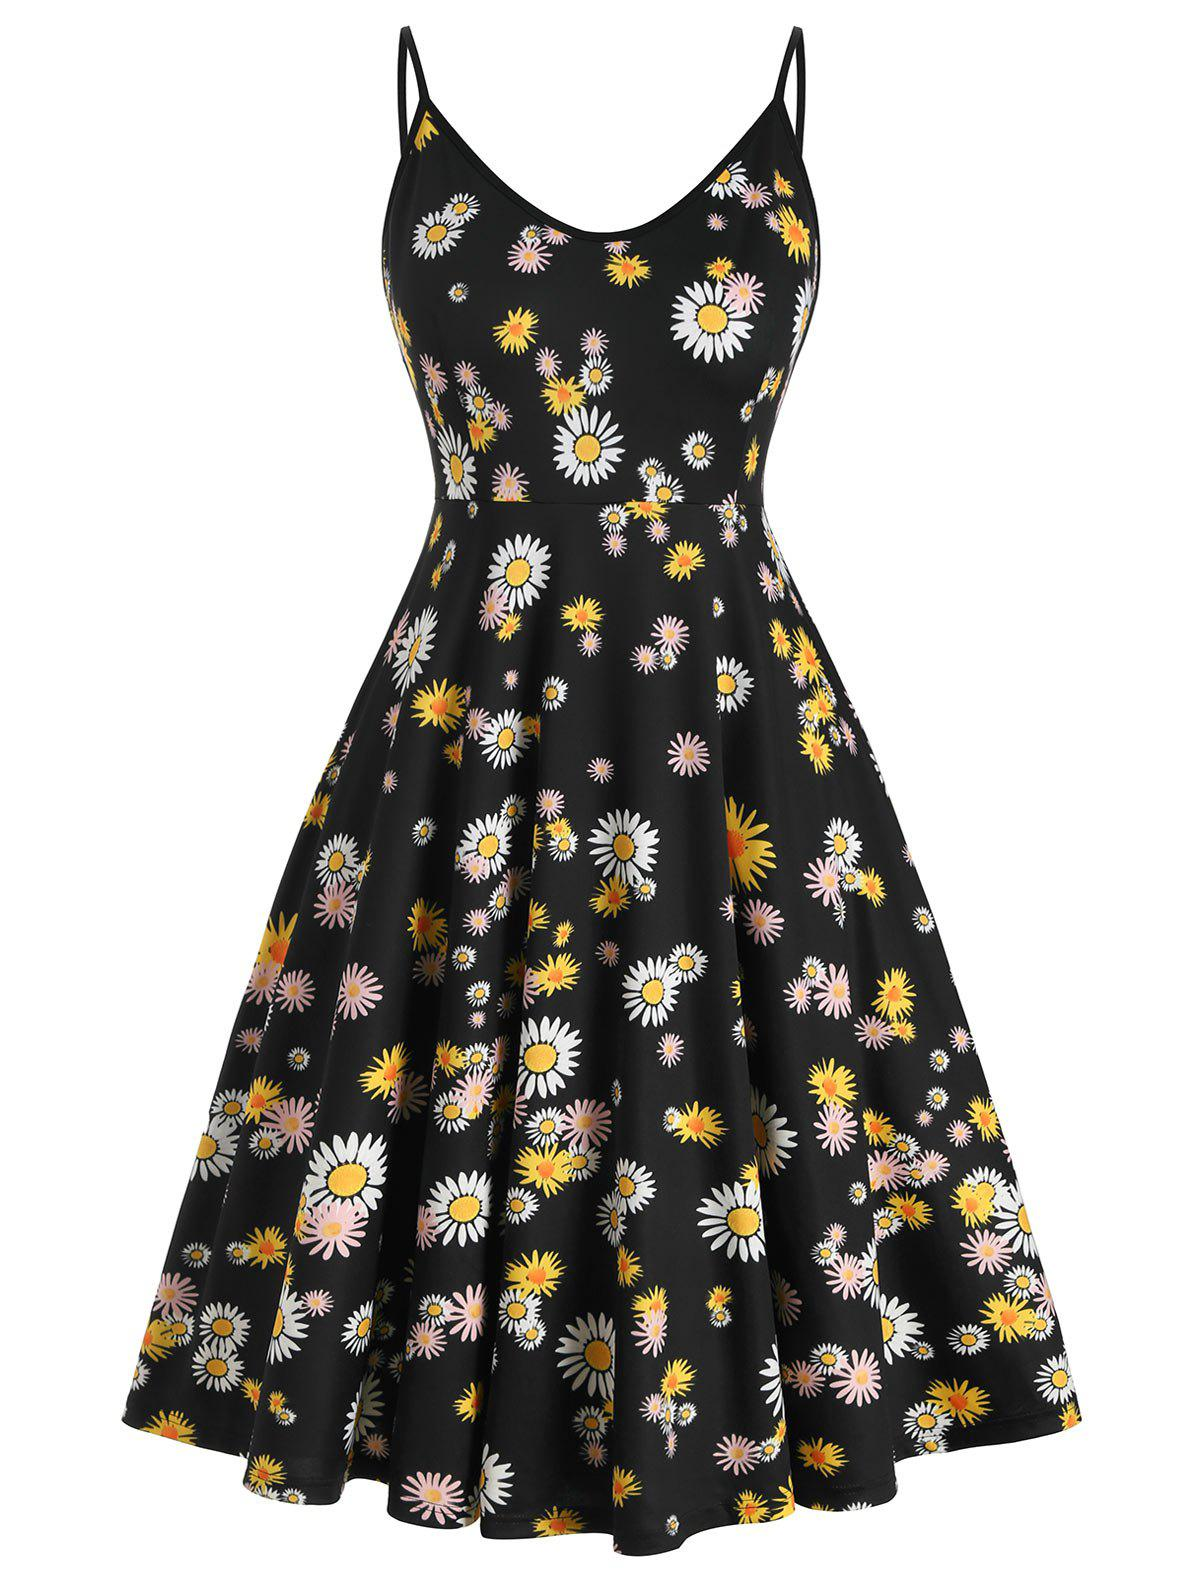 Plus Size Daisy Print Sleeveless Midi Dress - BLACK L